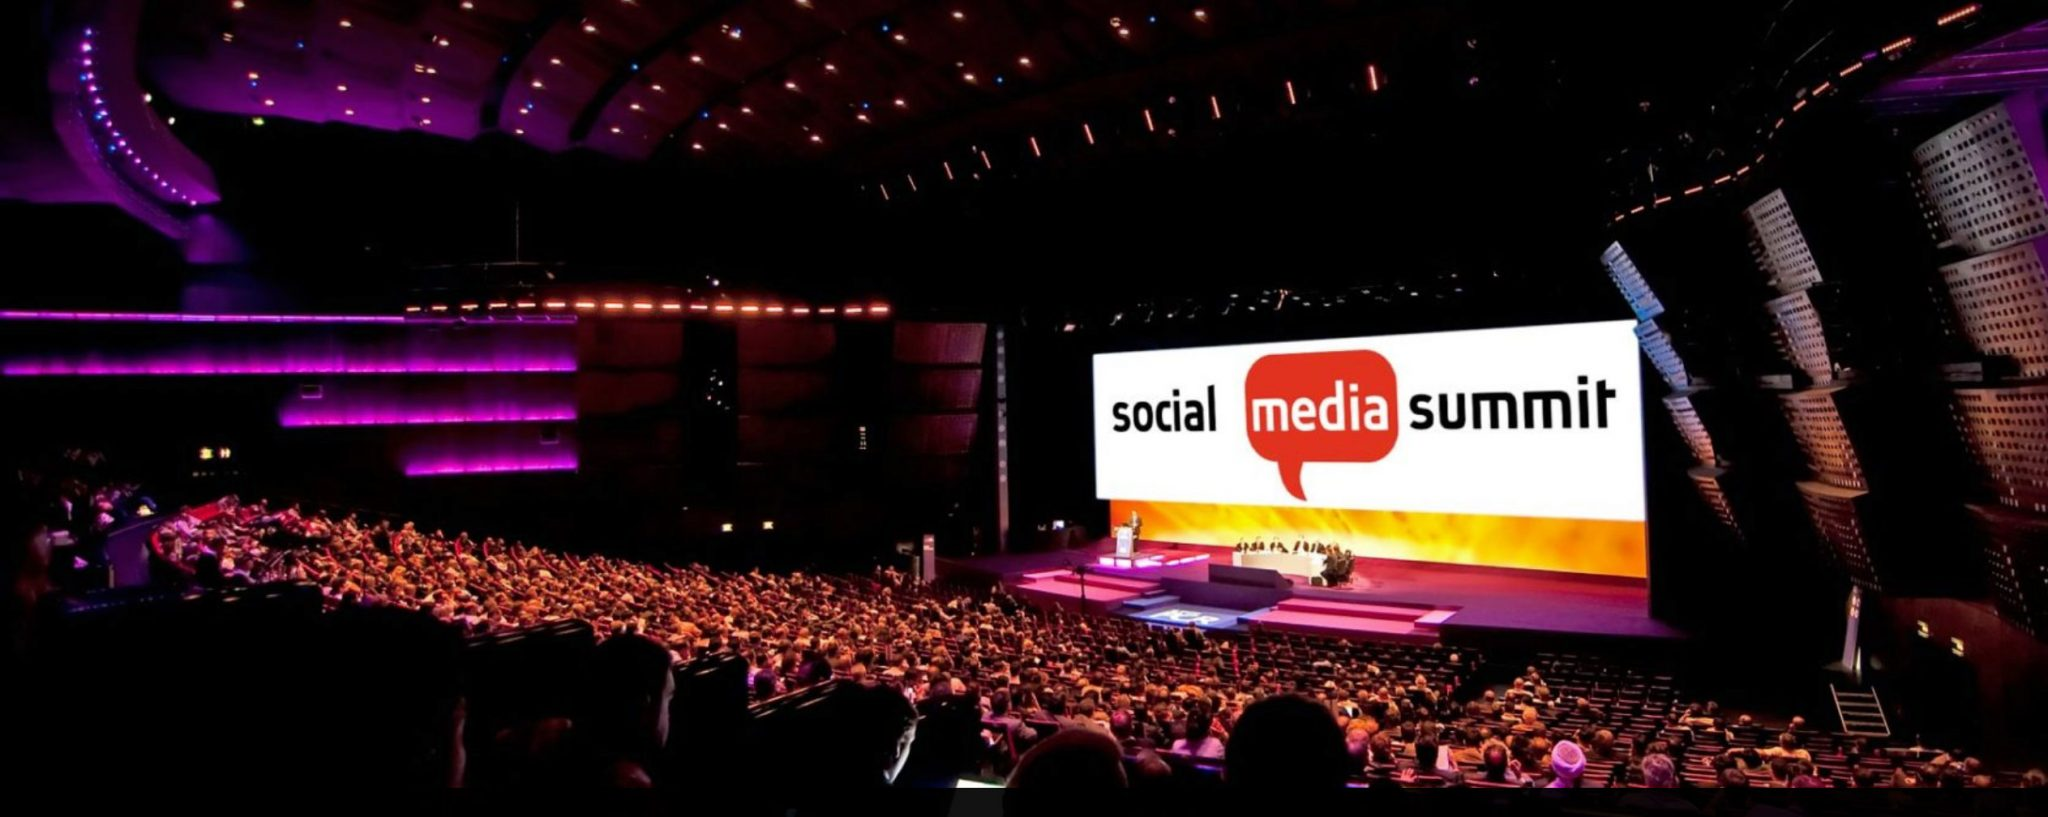 social-media-summit-5-mar-2020